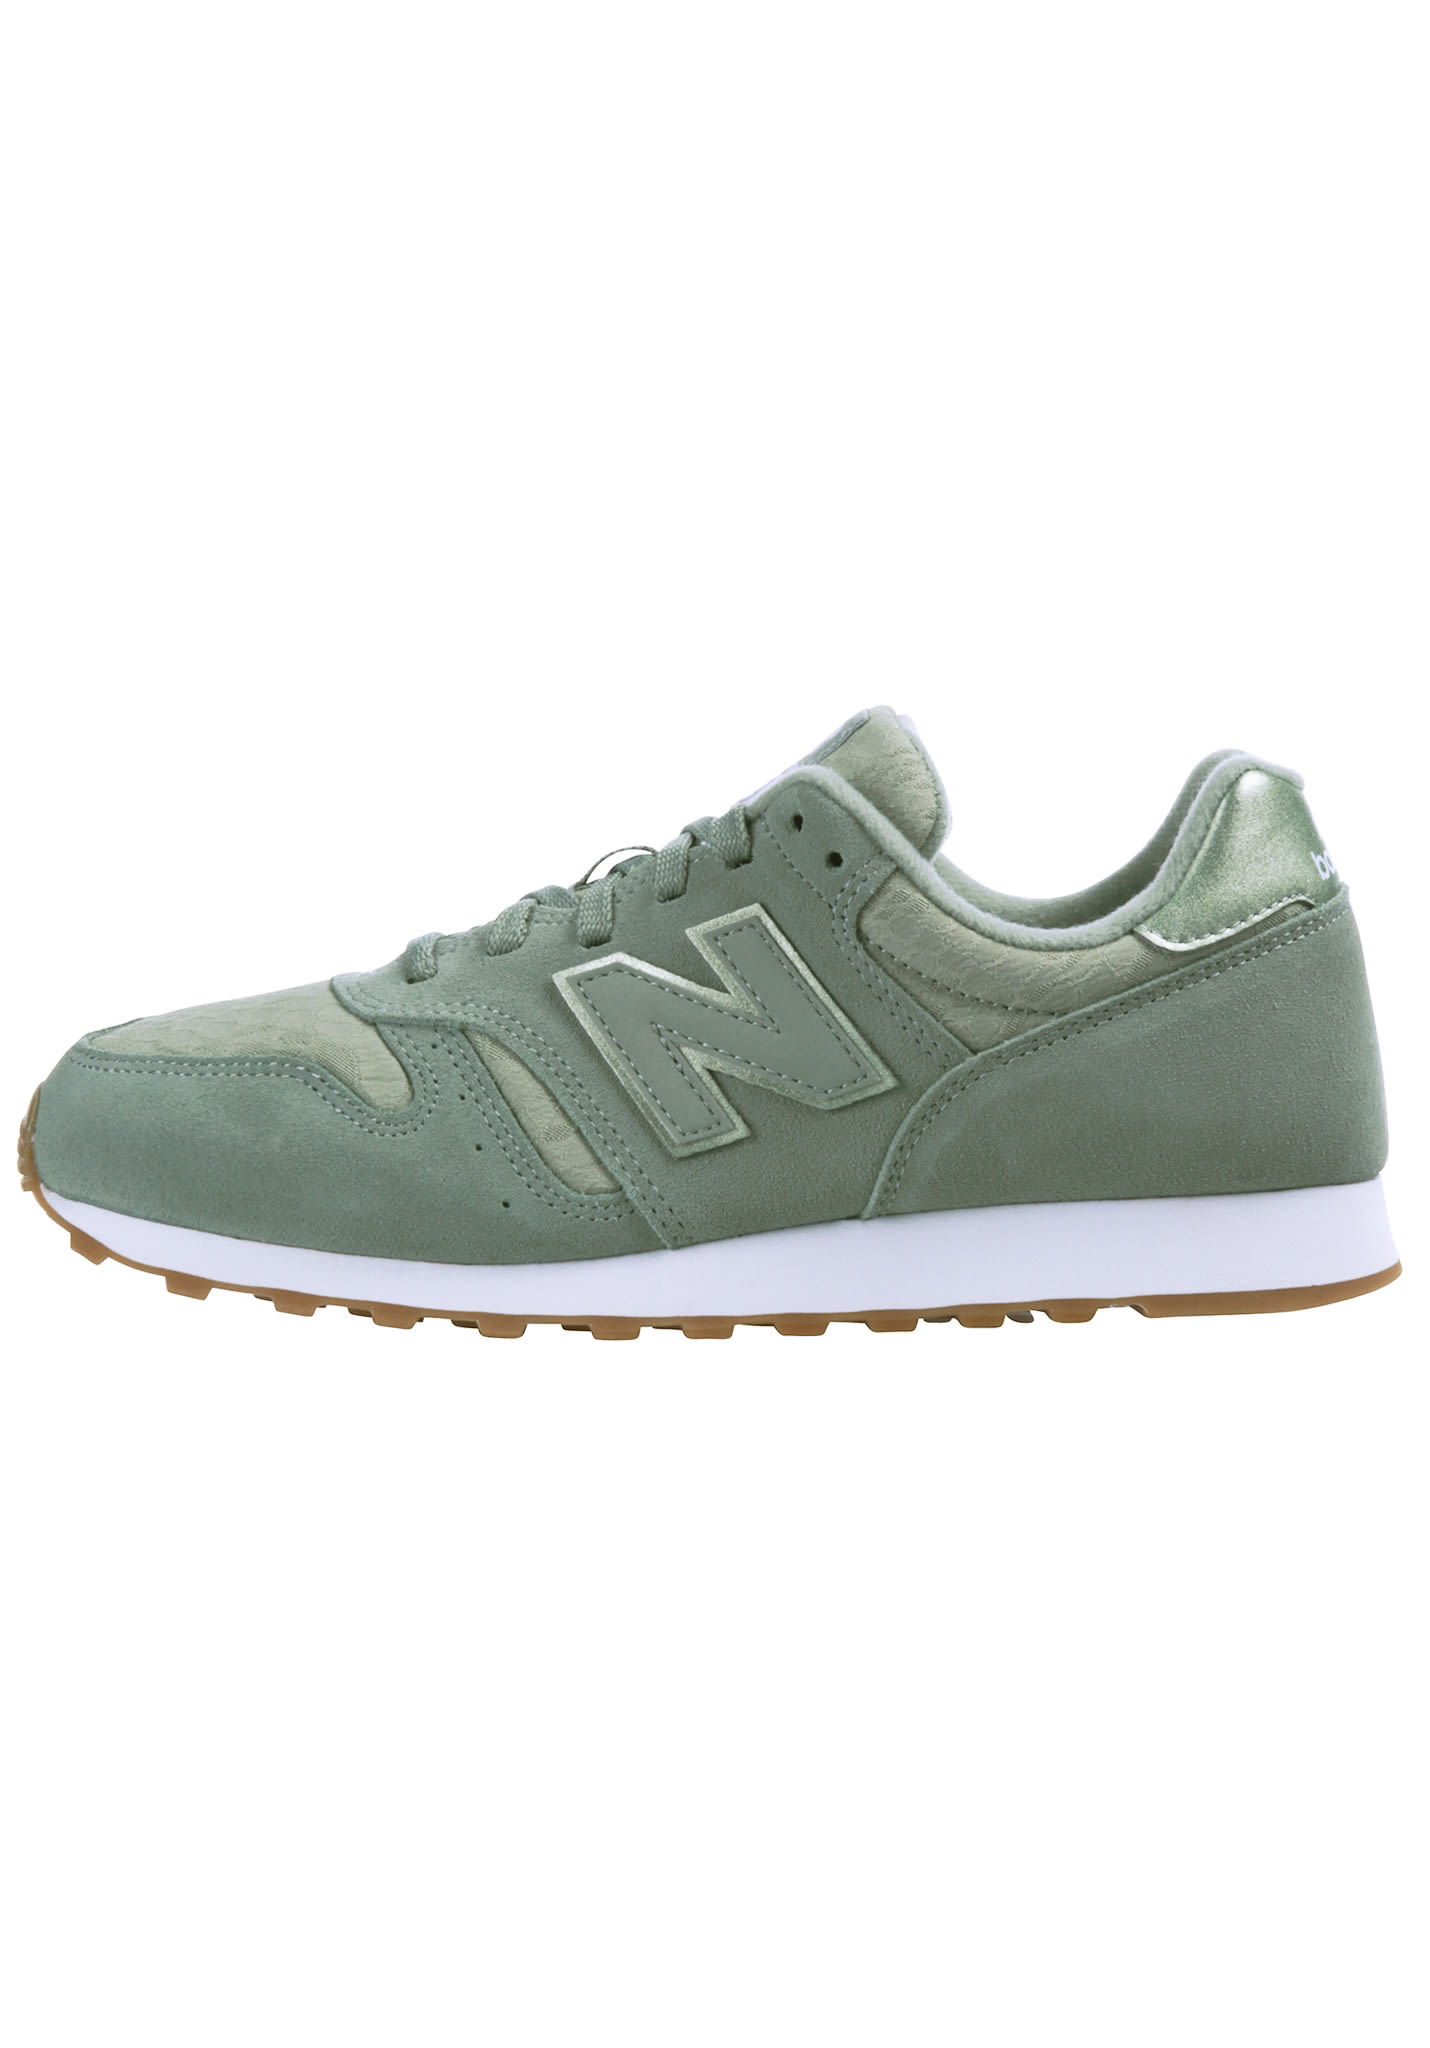 NEW BALANCE WL373 B - Sneakers for Women - Green